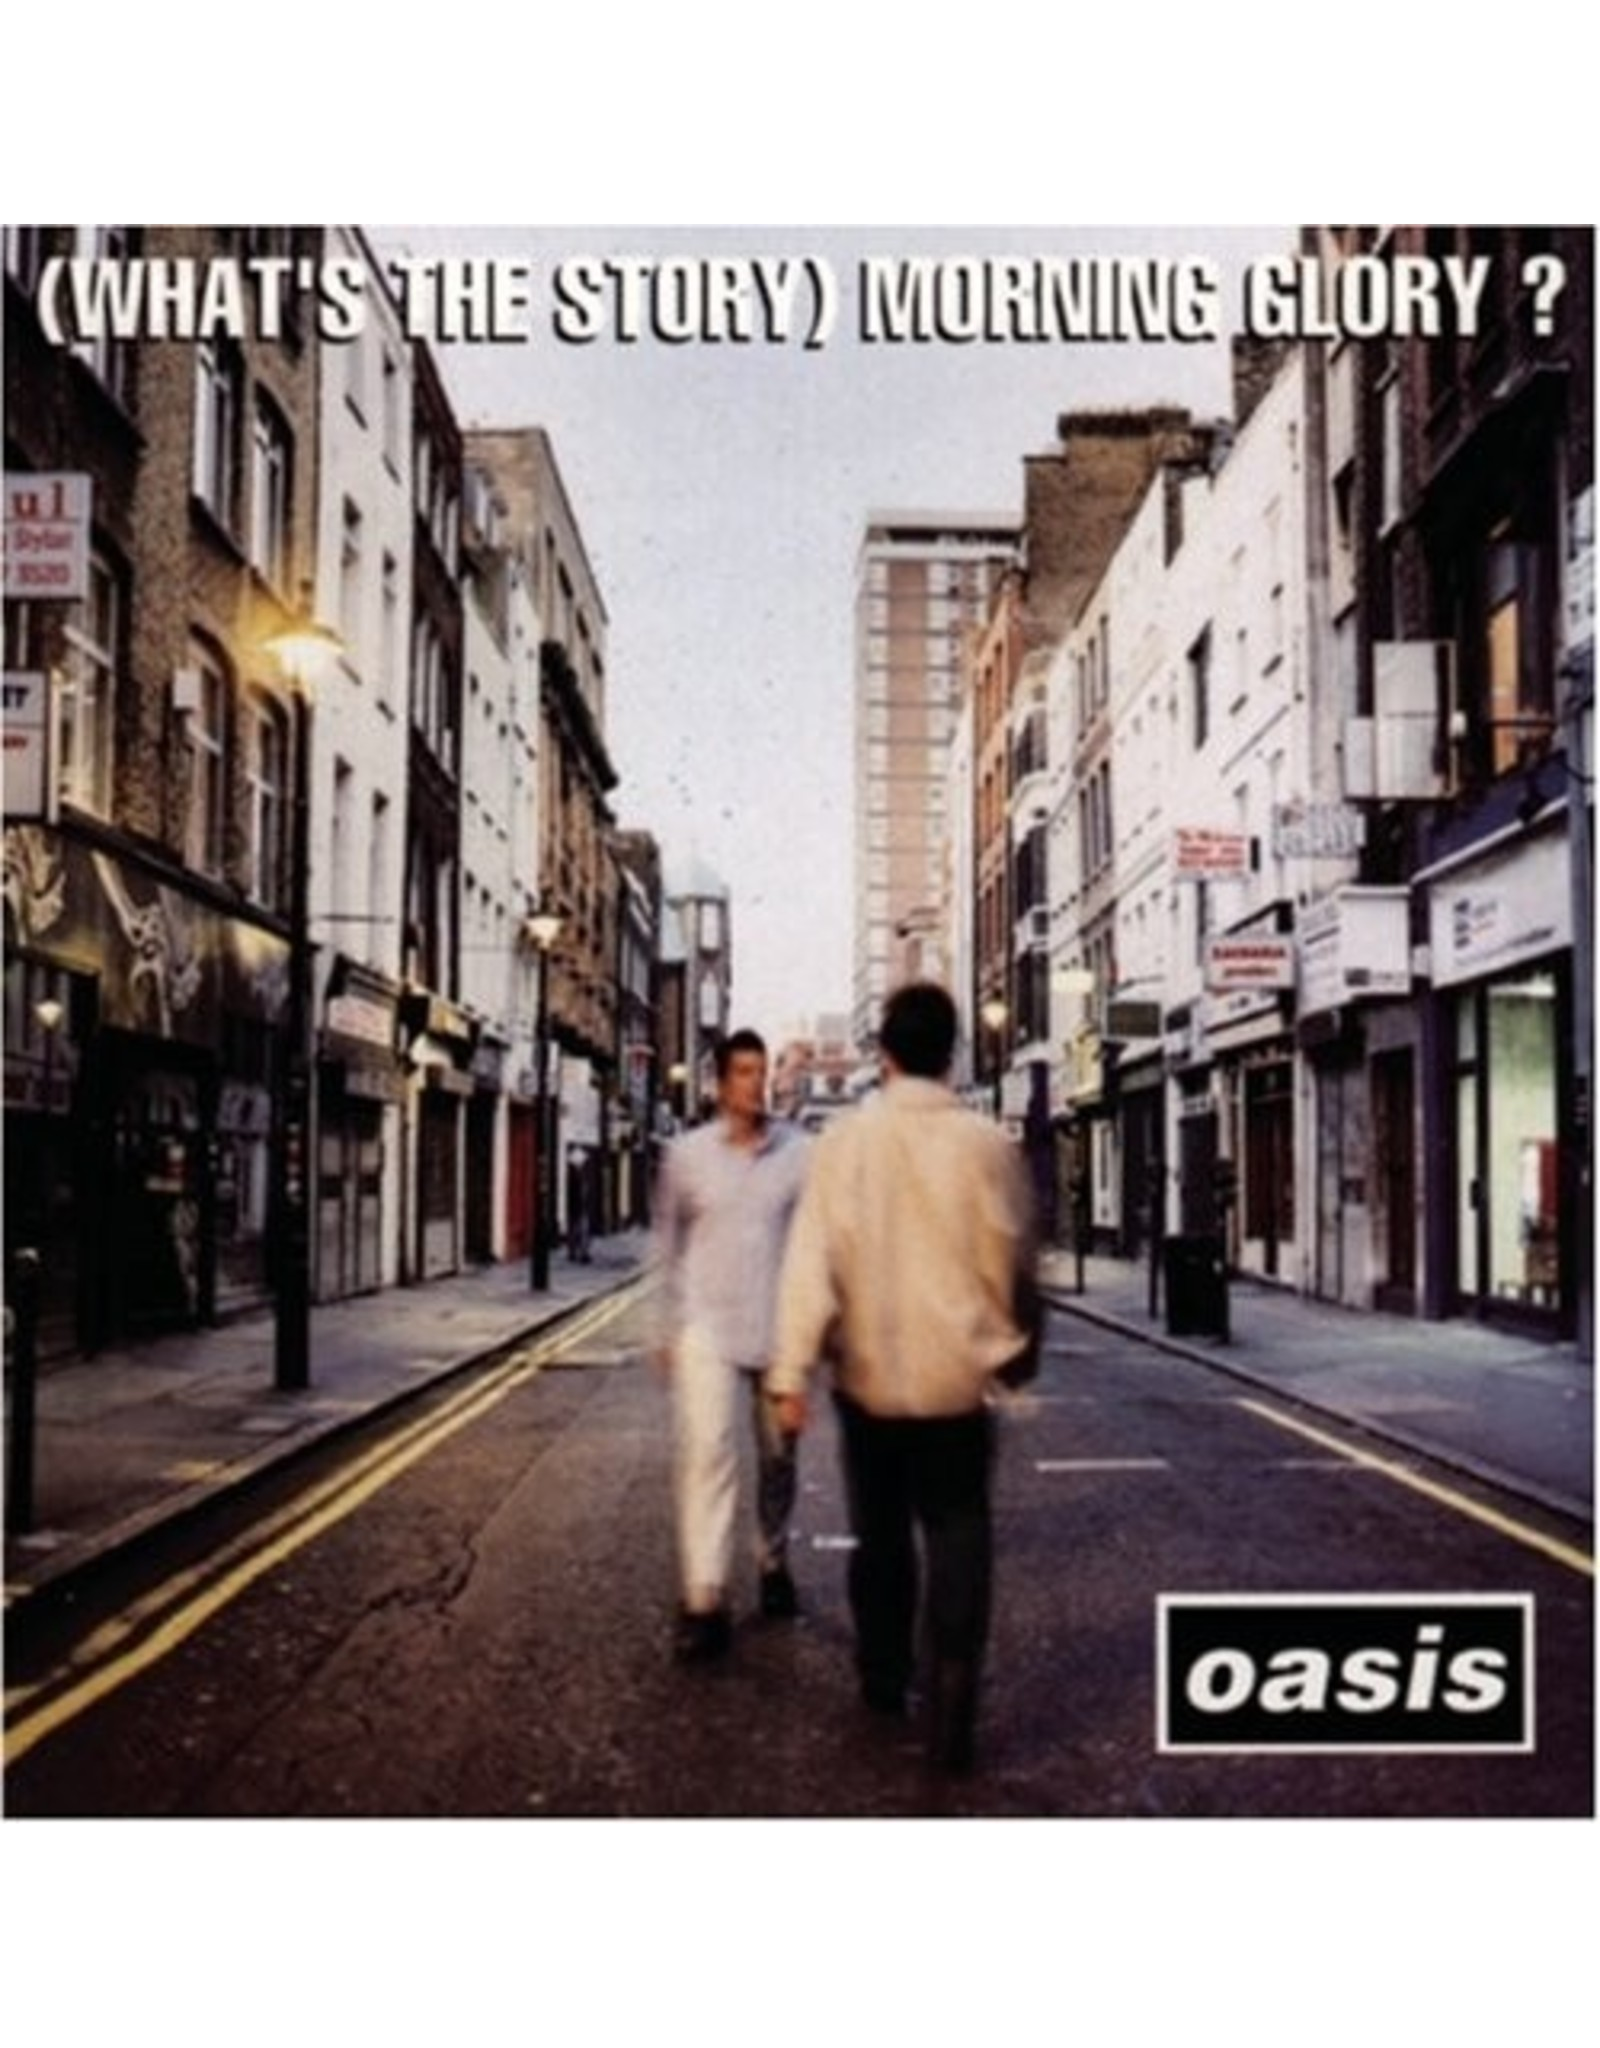 New Vinyl Oasis - What's The Story Morning Glory? 2LP